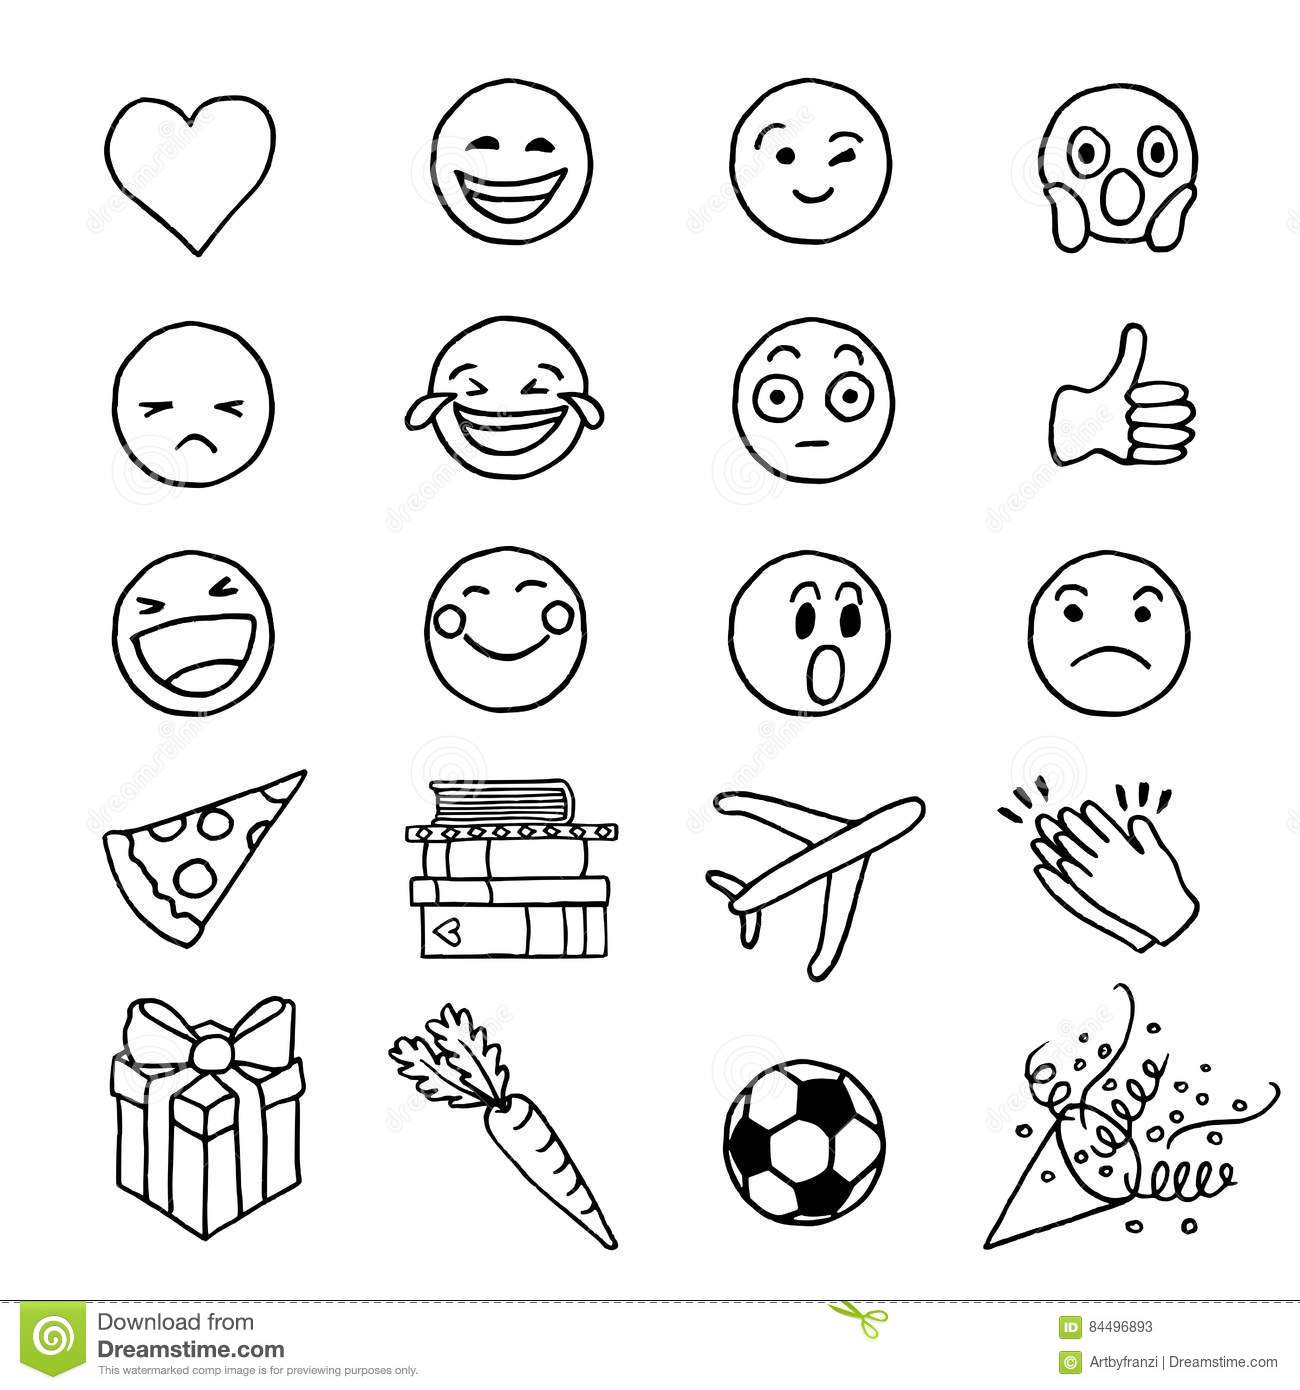 Hand Drawn Doodle Emoji Stock Vector Illustration Of